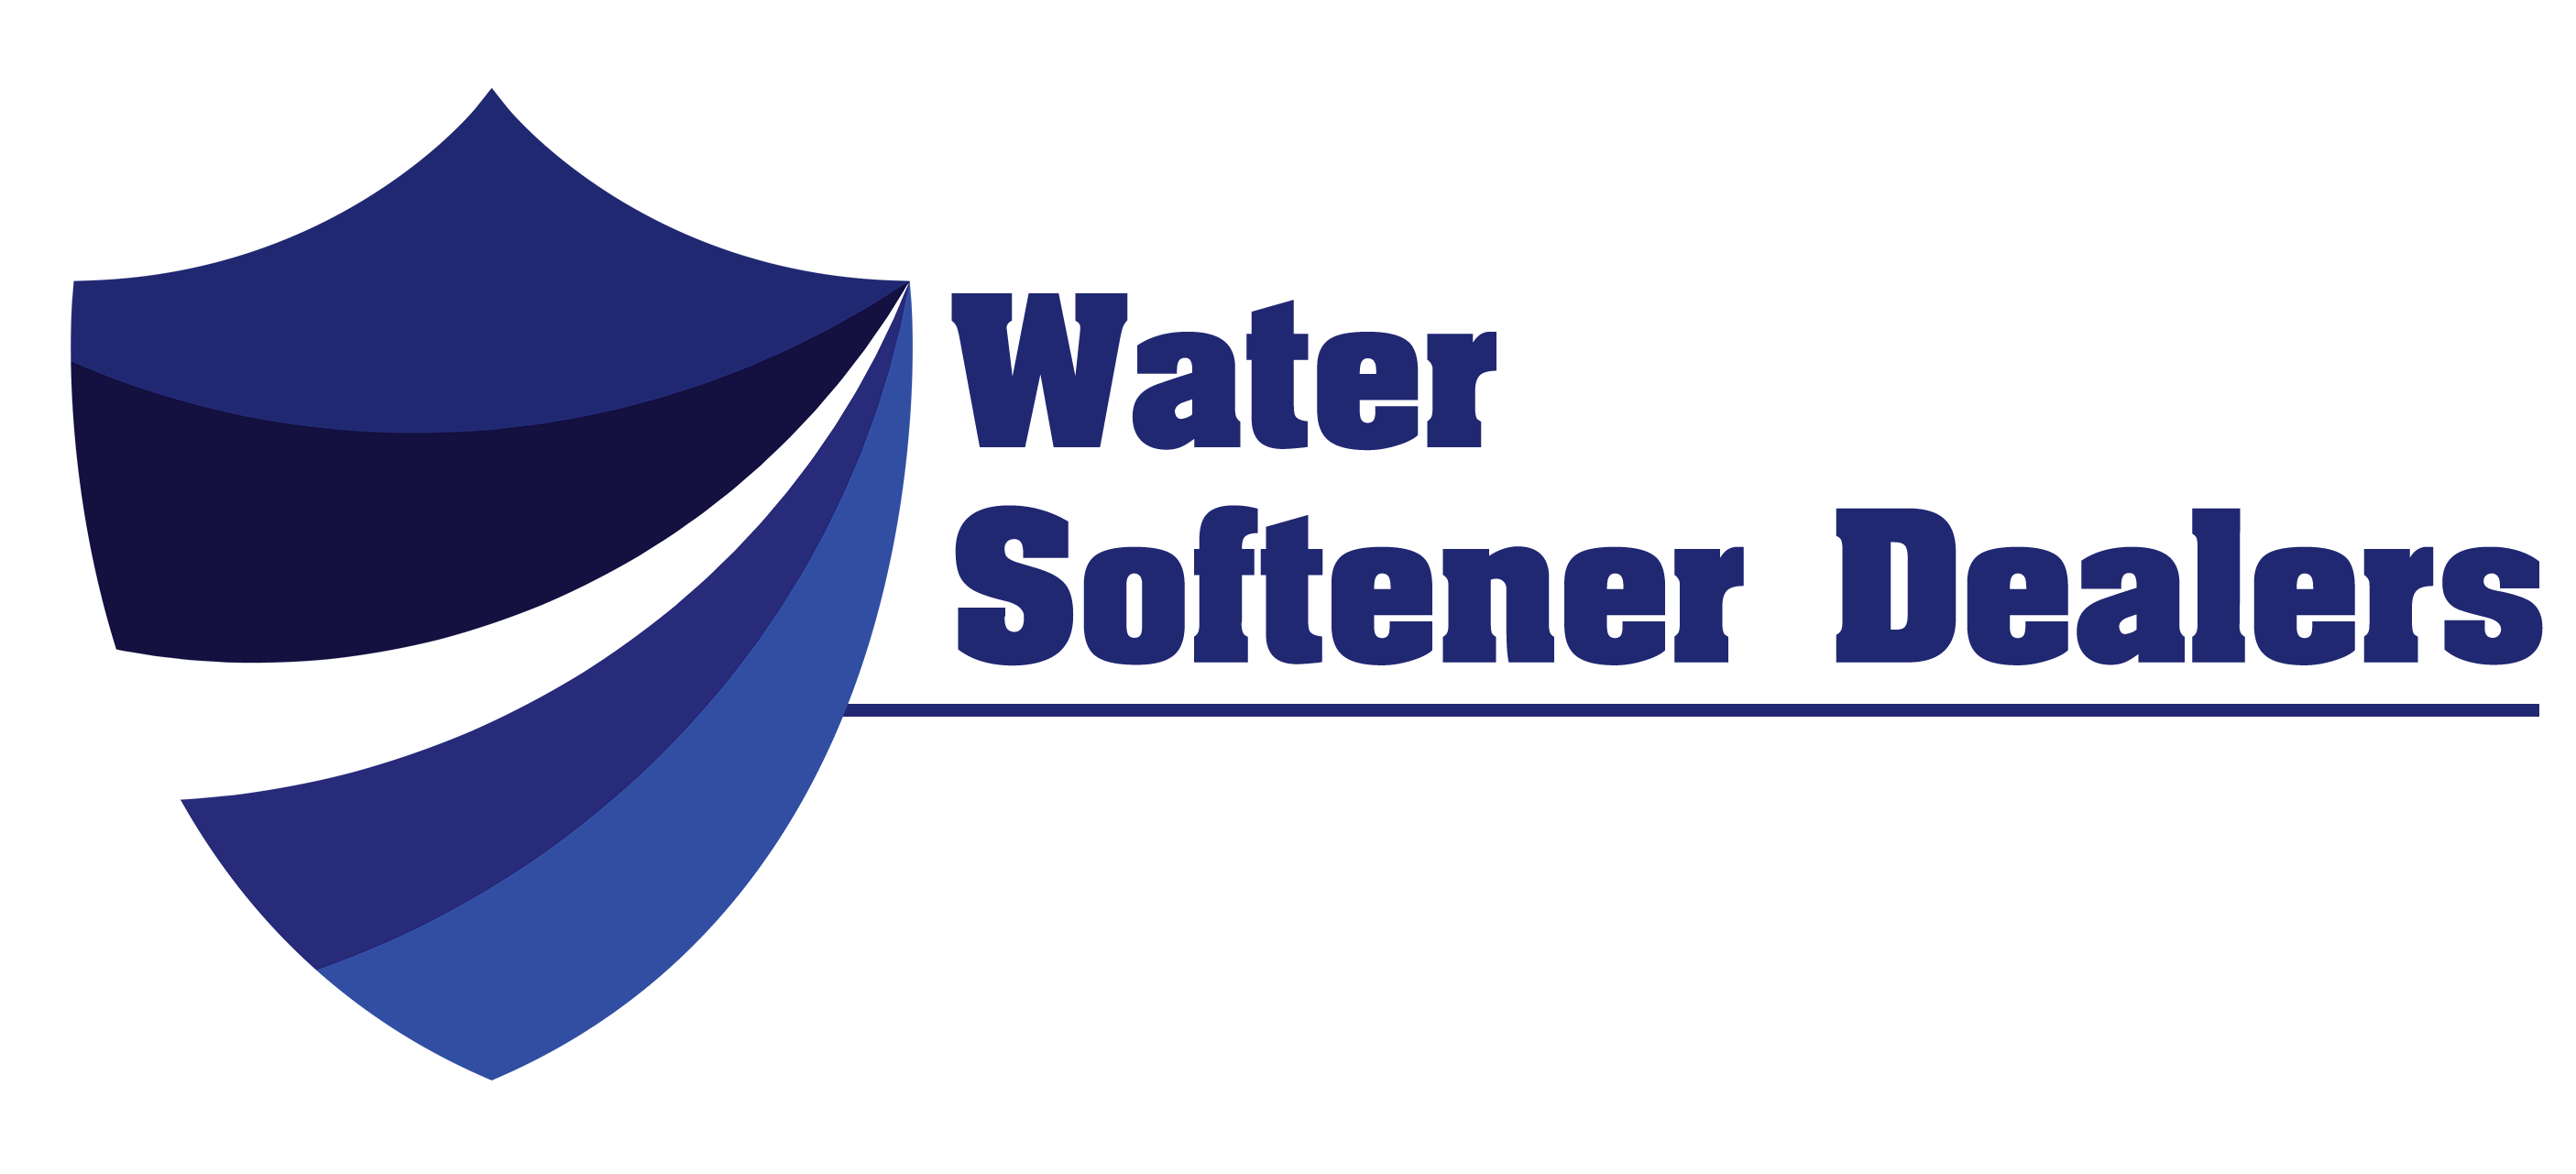 Water Softener Dealers privacy policy logo